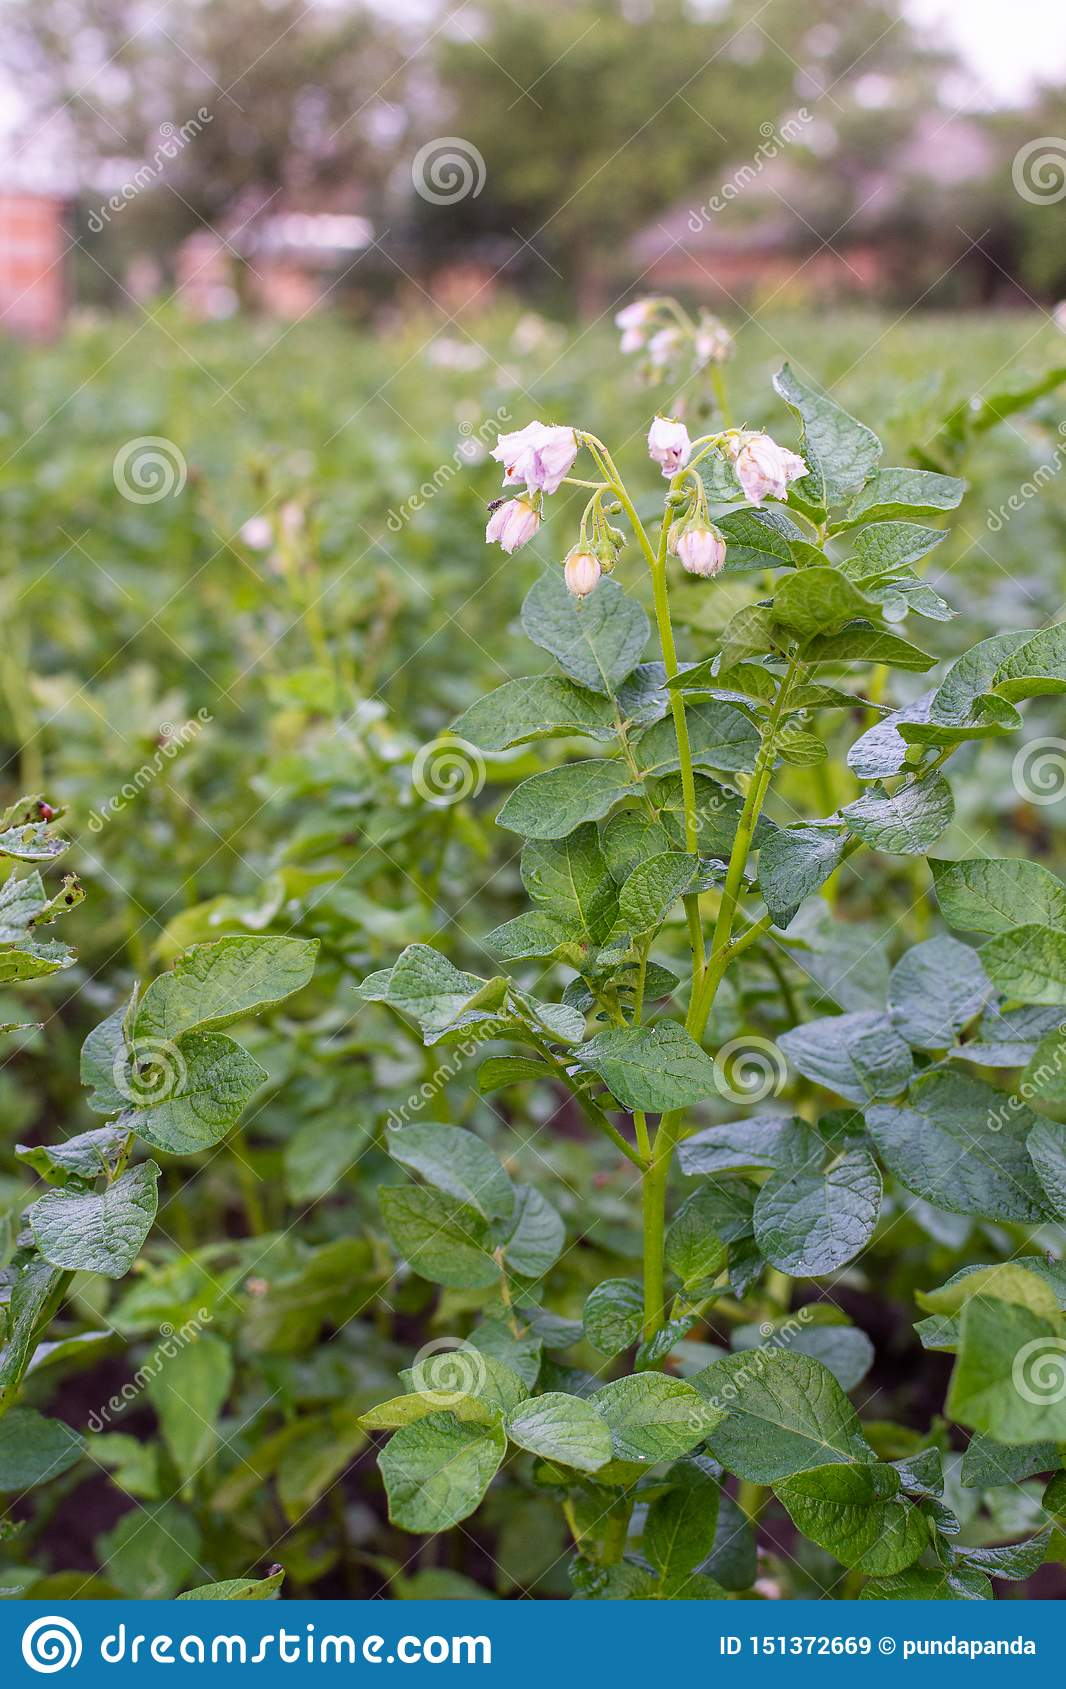 Green leaves of potato with inflorescence